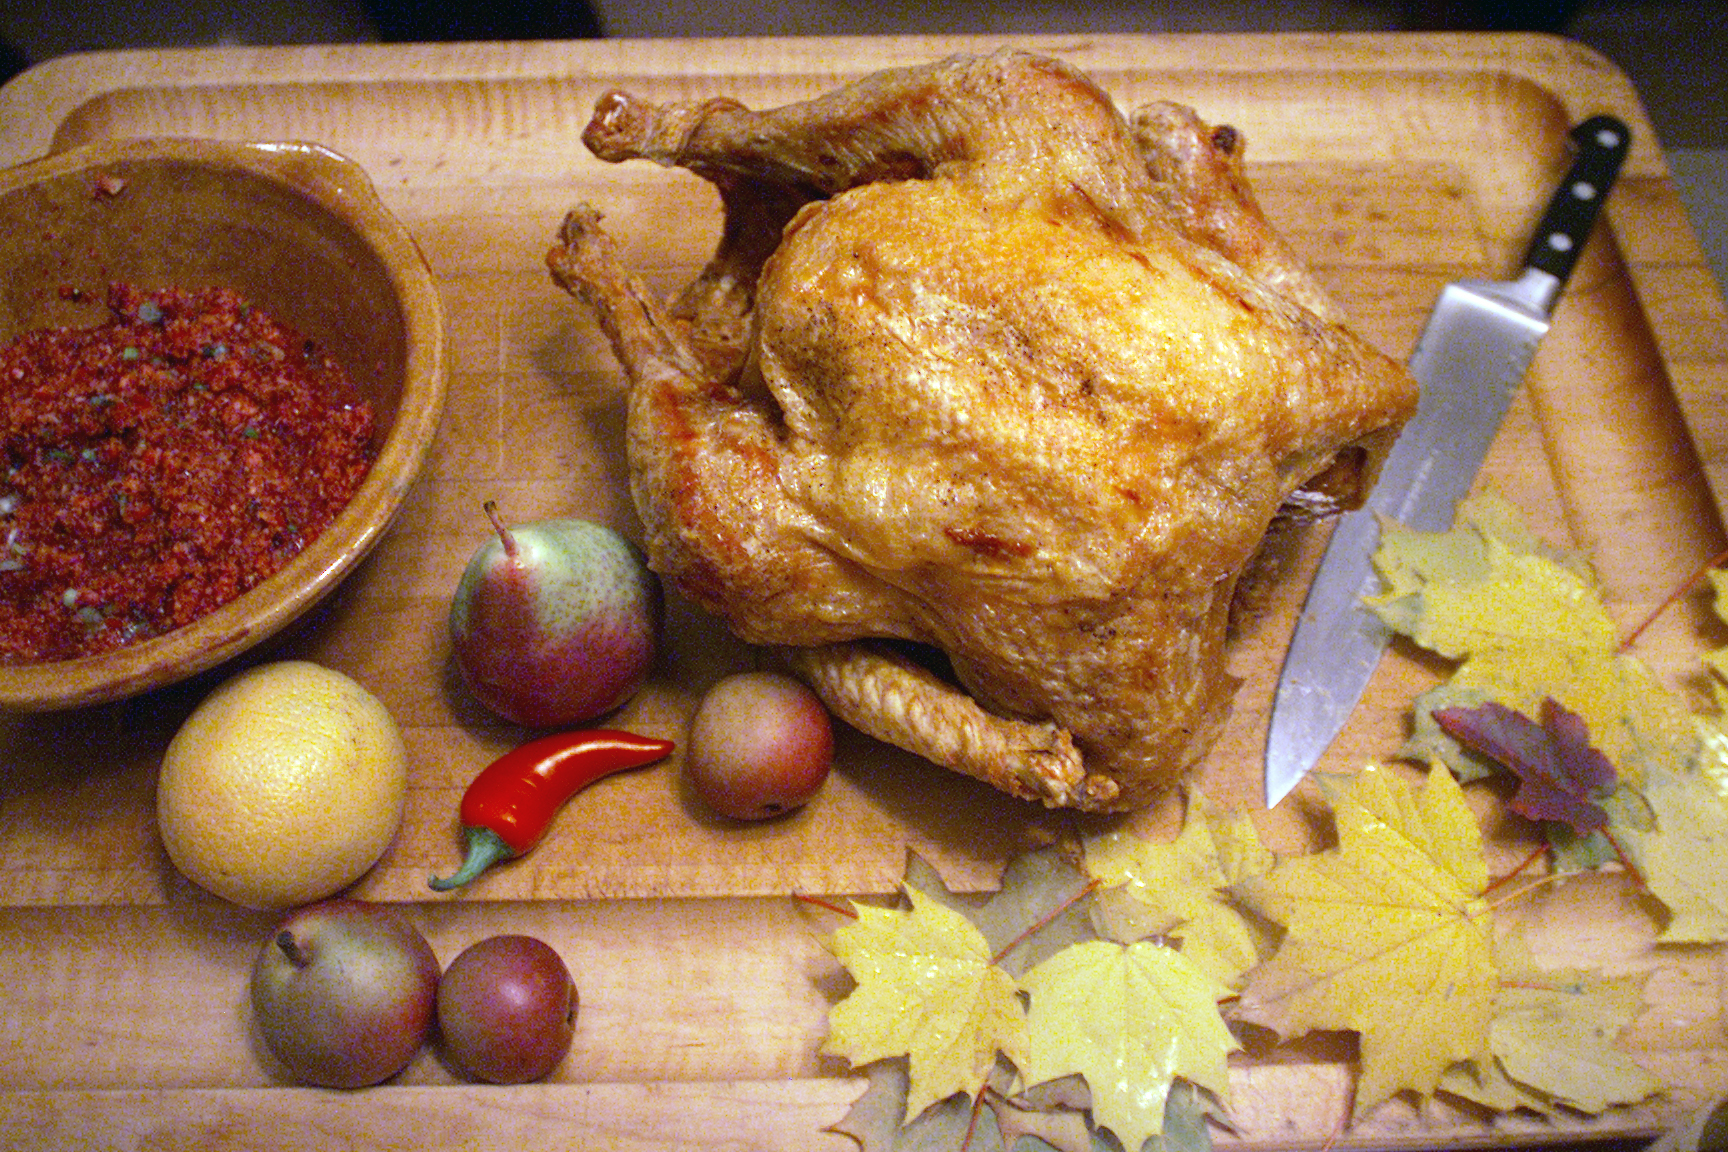 A turkey sits on a cutting board next to a knife, leaves, fruits and vegetables, and stuffing.